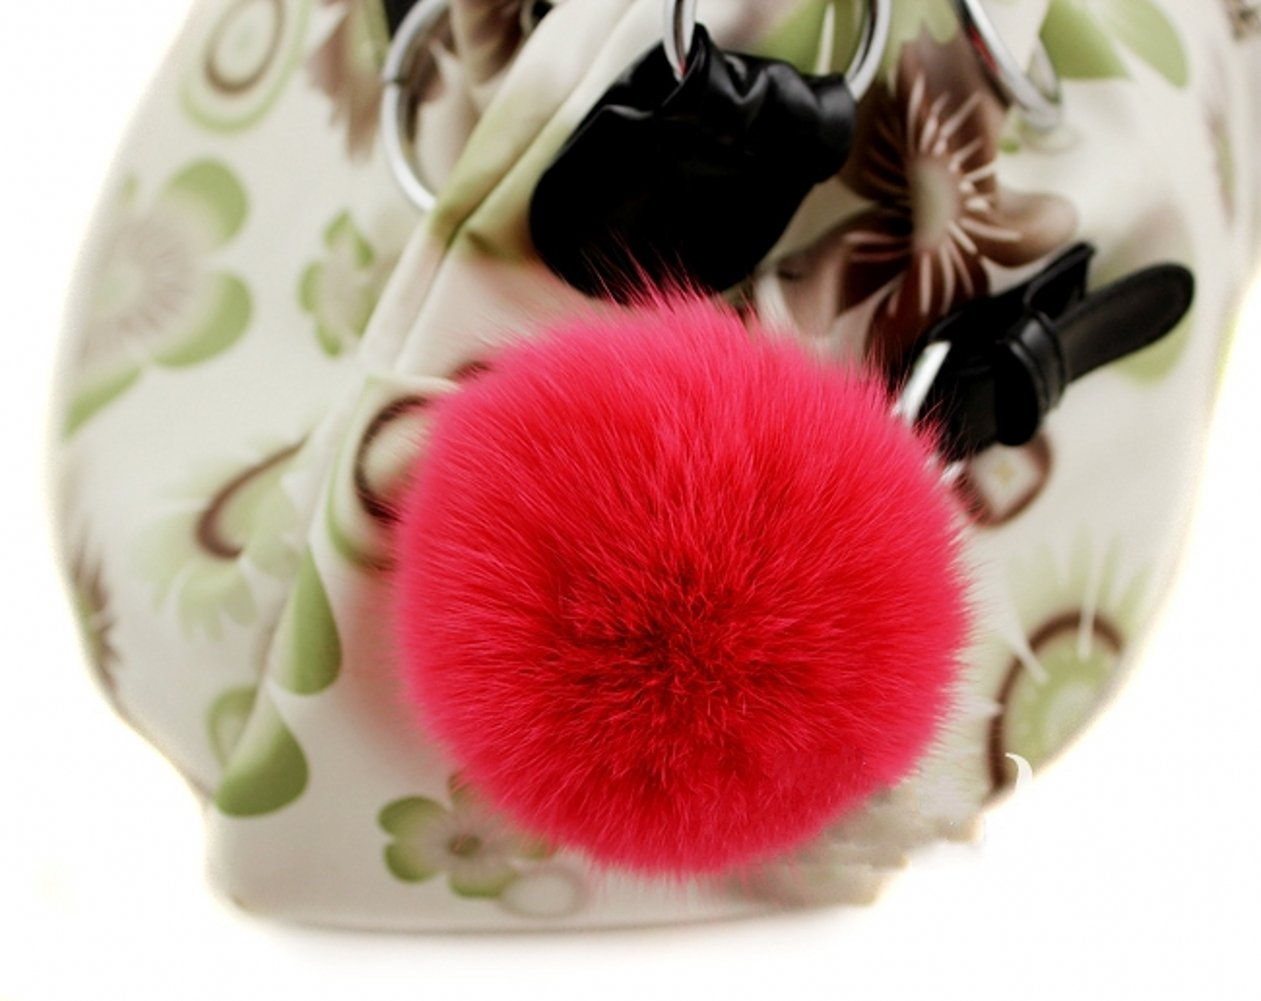 Fox Pompon Fuzzies Fox Fur Ball Use for Mobile Strap Coppia Keychain 4""